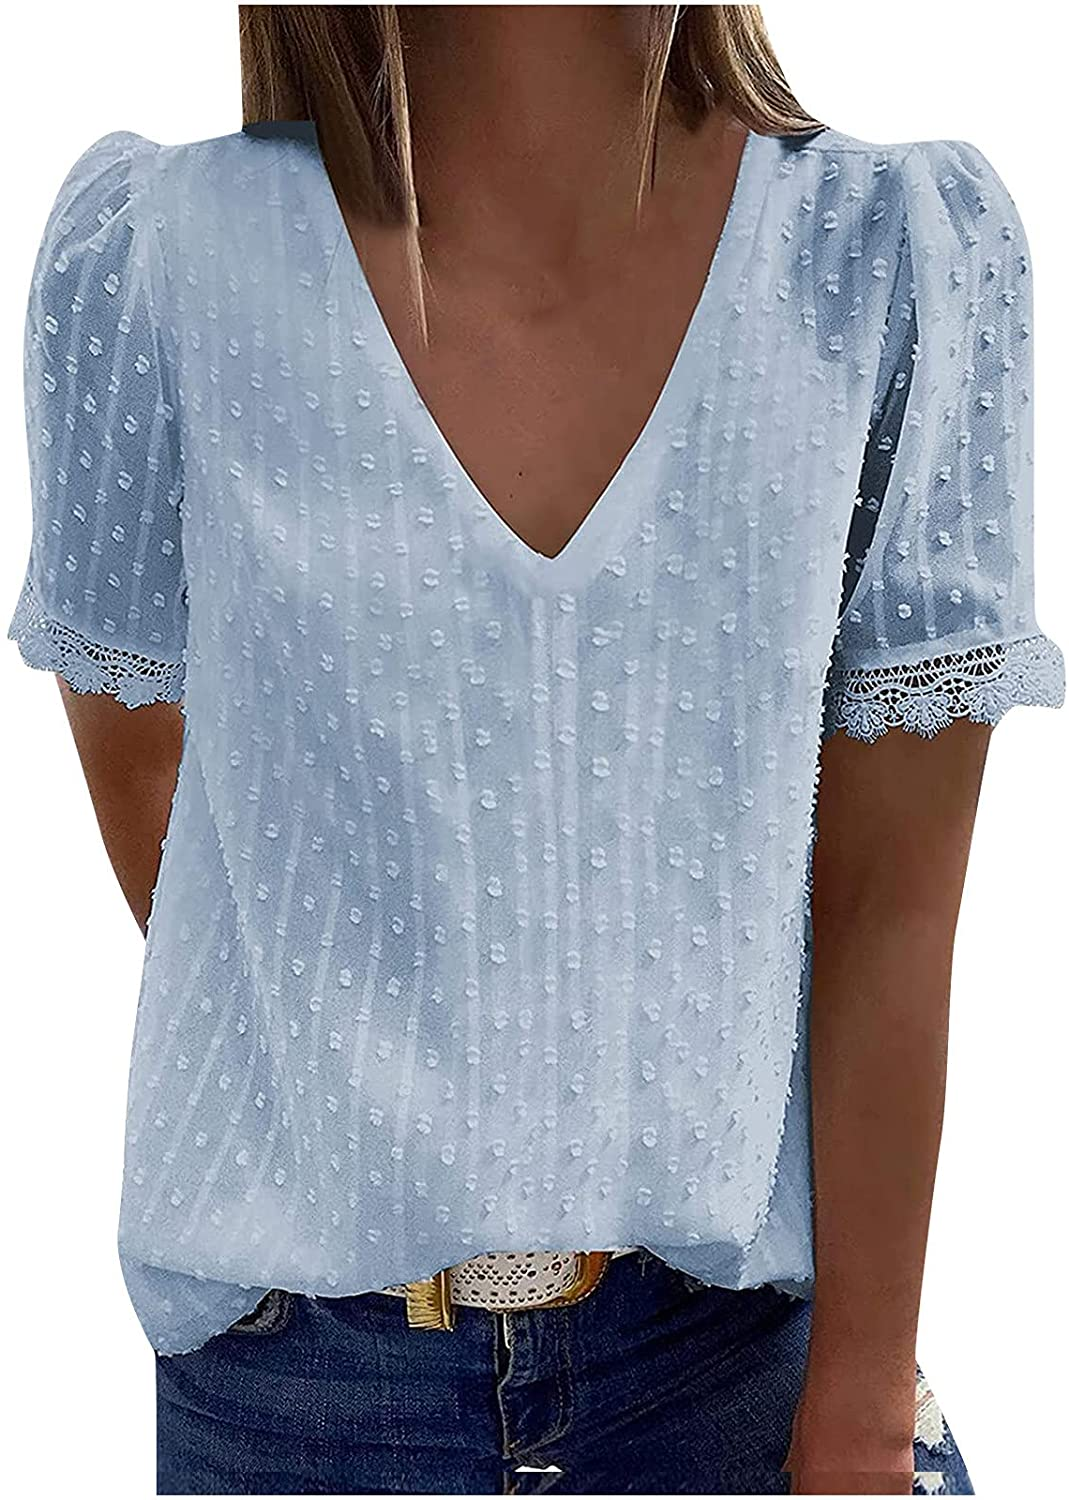 Fashion Women Casual Solid Short Sleeve V-Neck Lace T-Shirt Blouse Tops